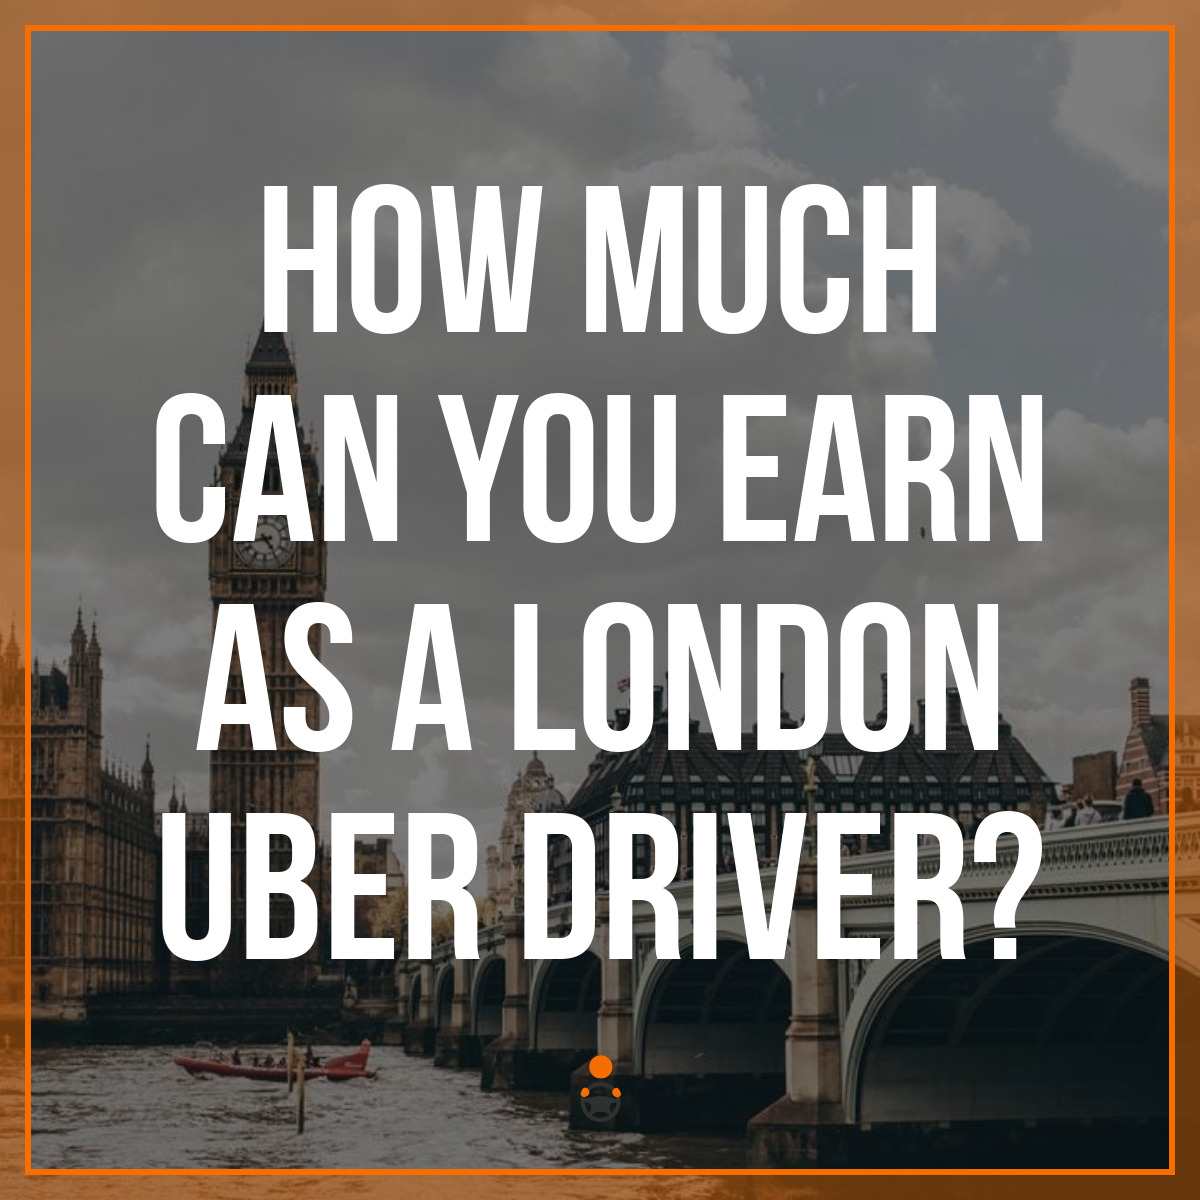 How Much Can You Earn as a London Uber Driver?